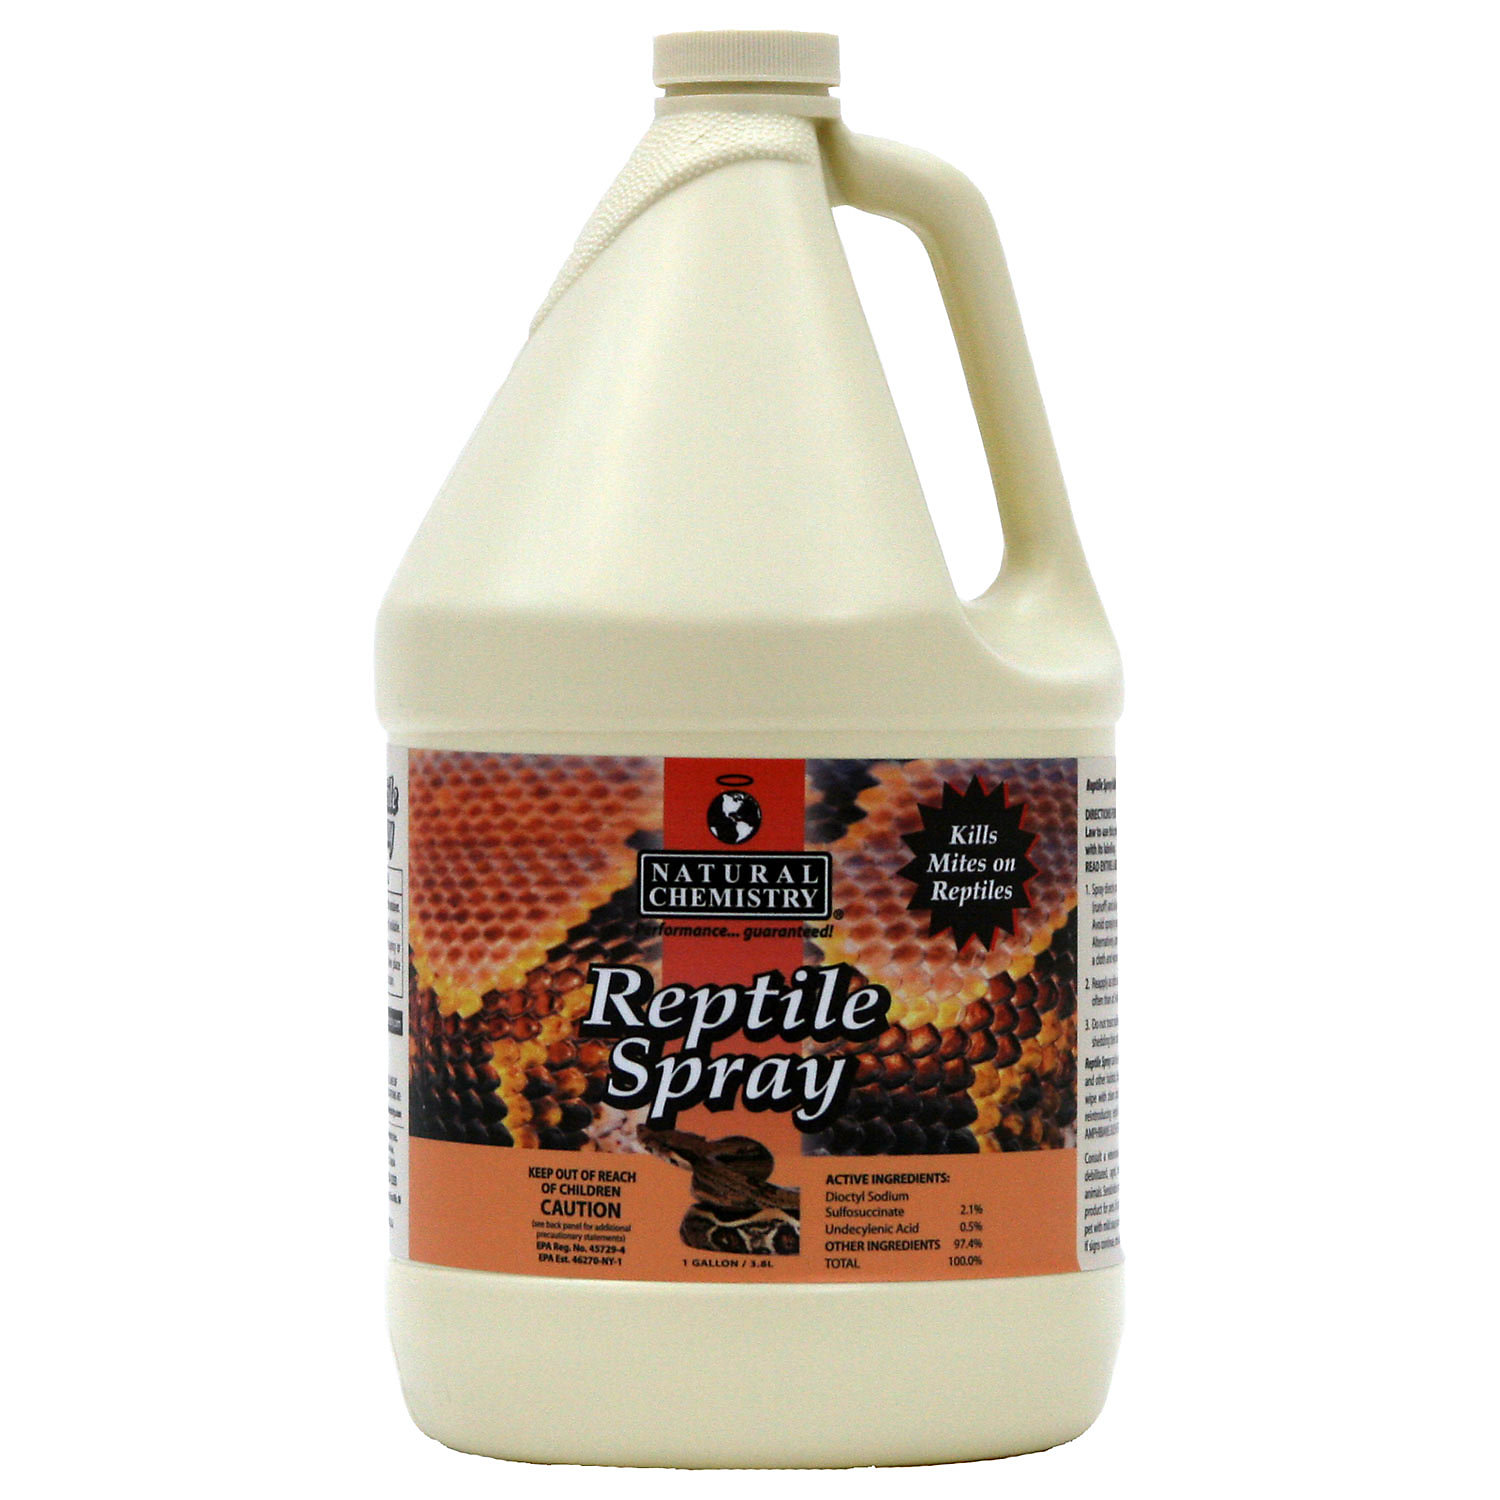 Image of Natural Chemistry Reptile Spray, 1 gallon